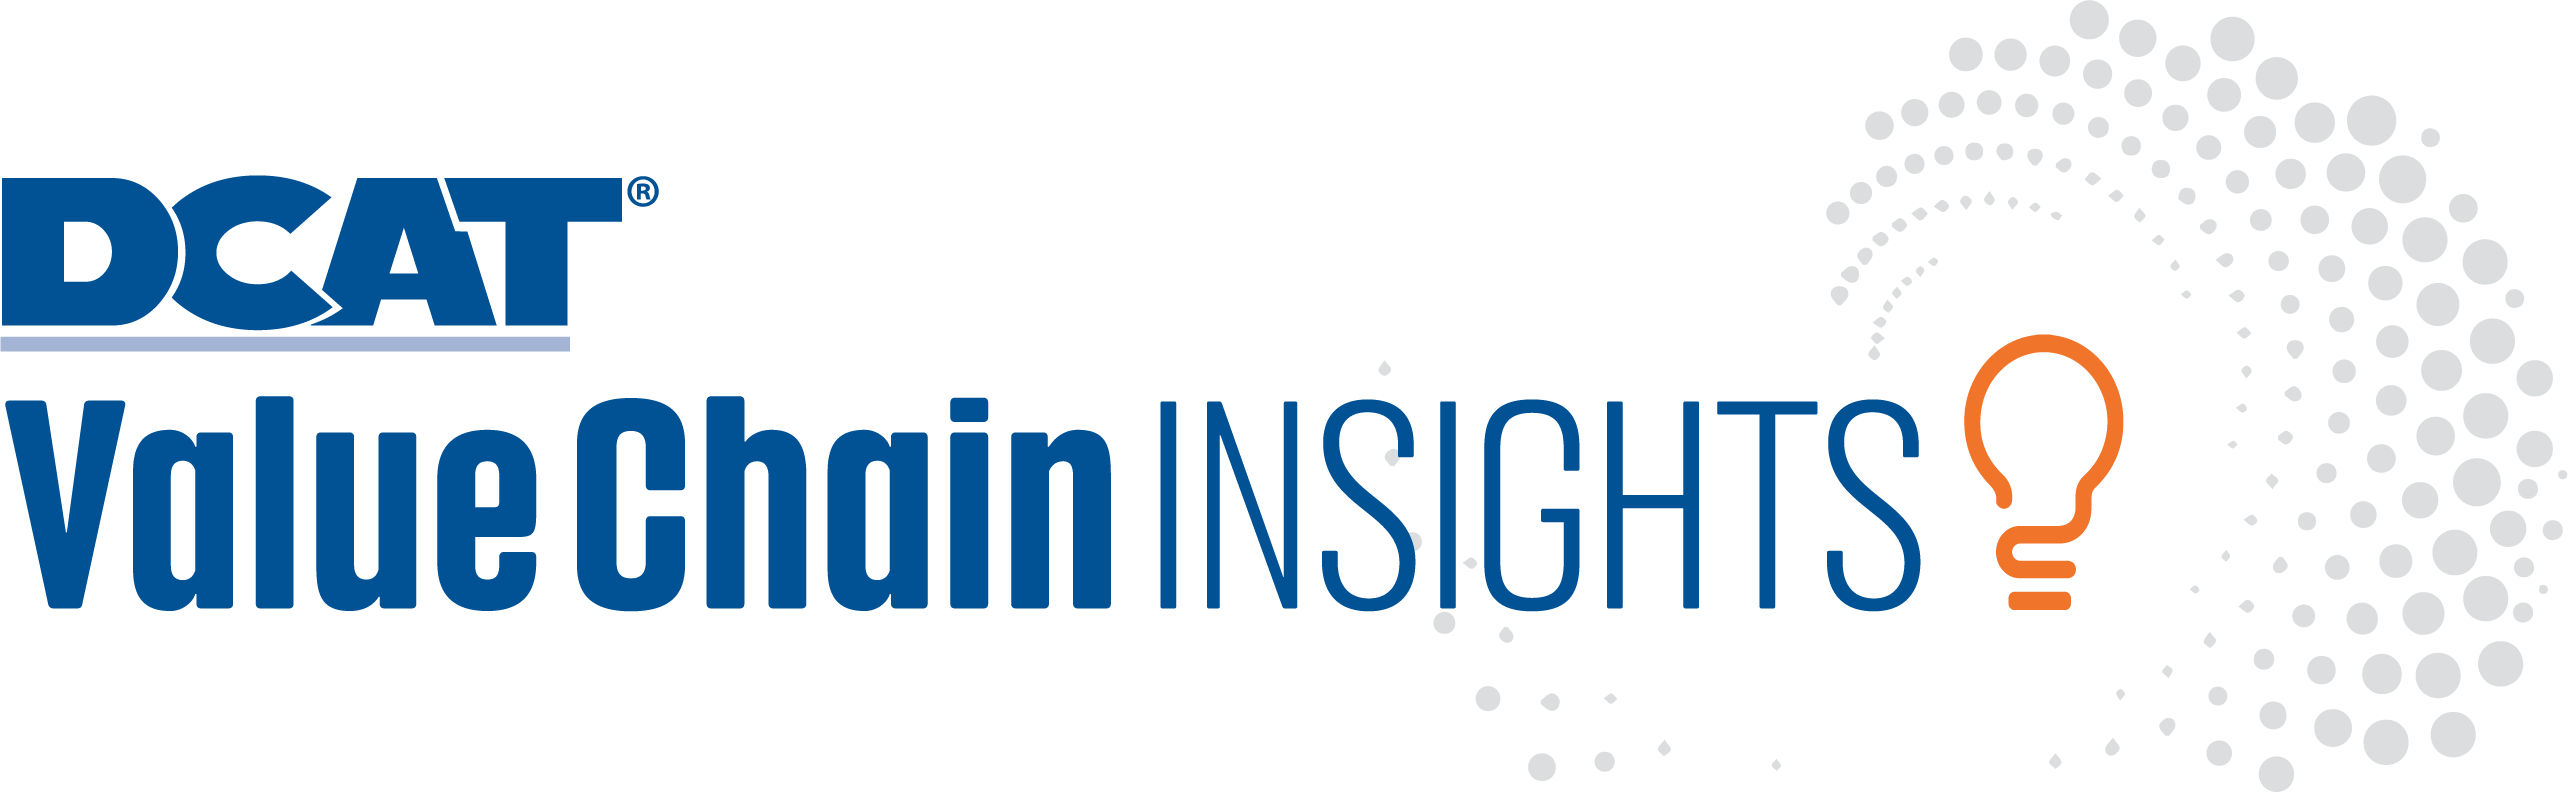 DCAT Value Chain Insights